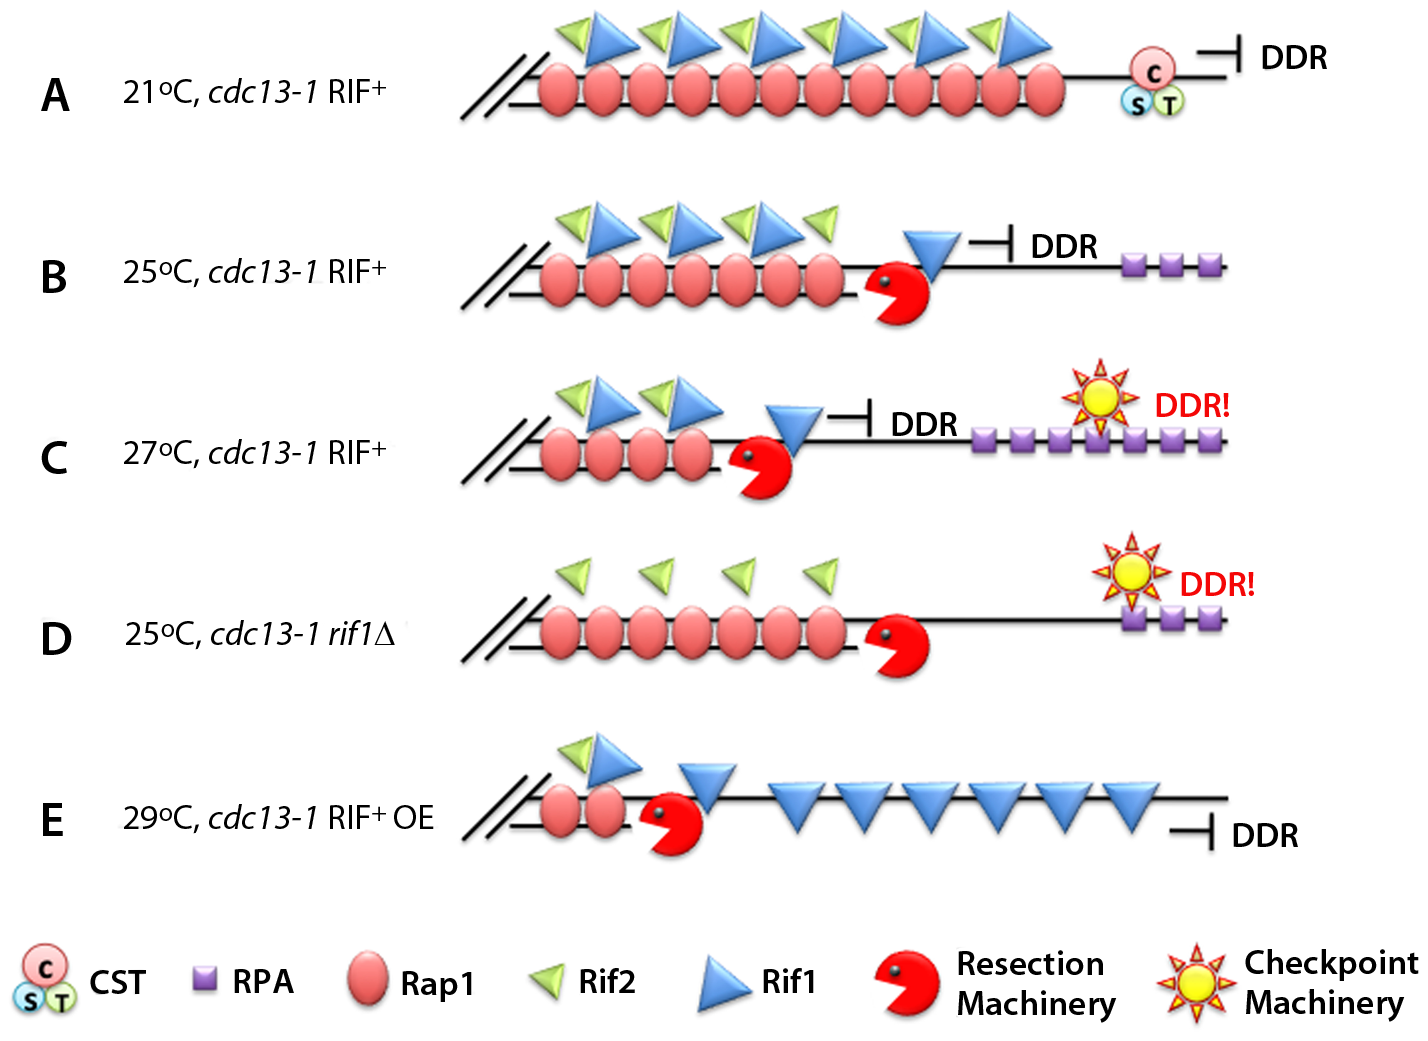 Rif1 works as an anti-checkpoint protein.